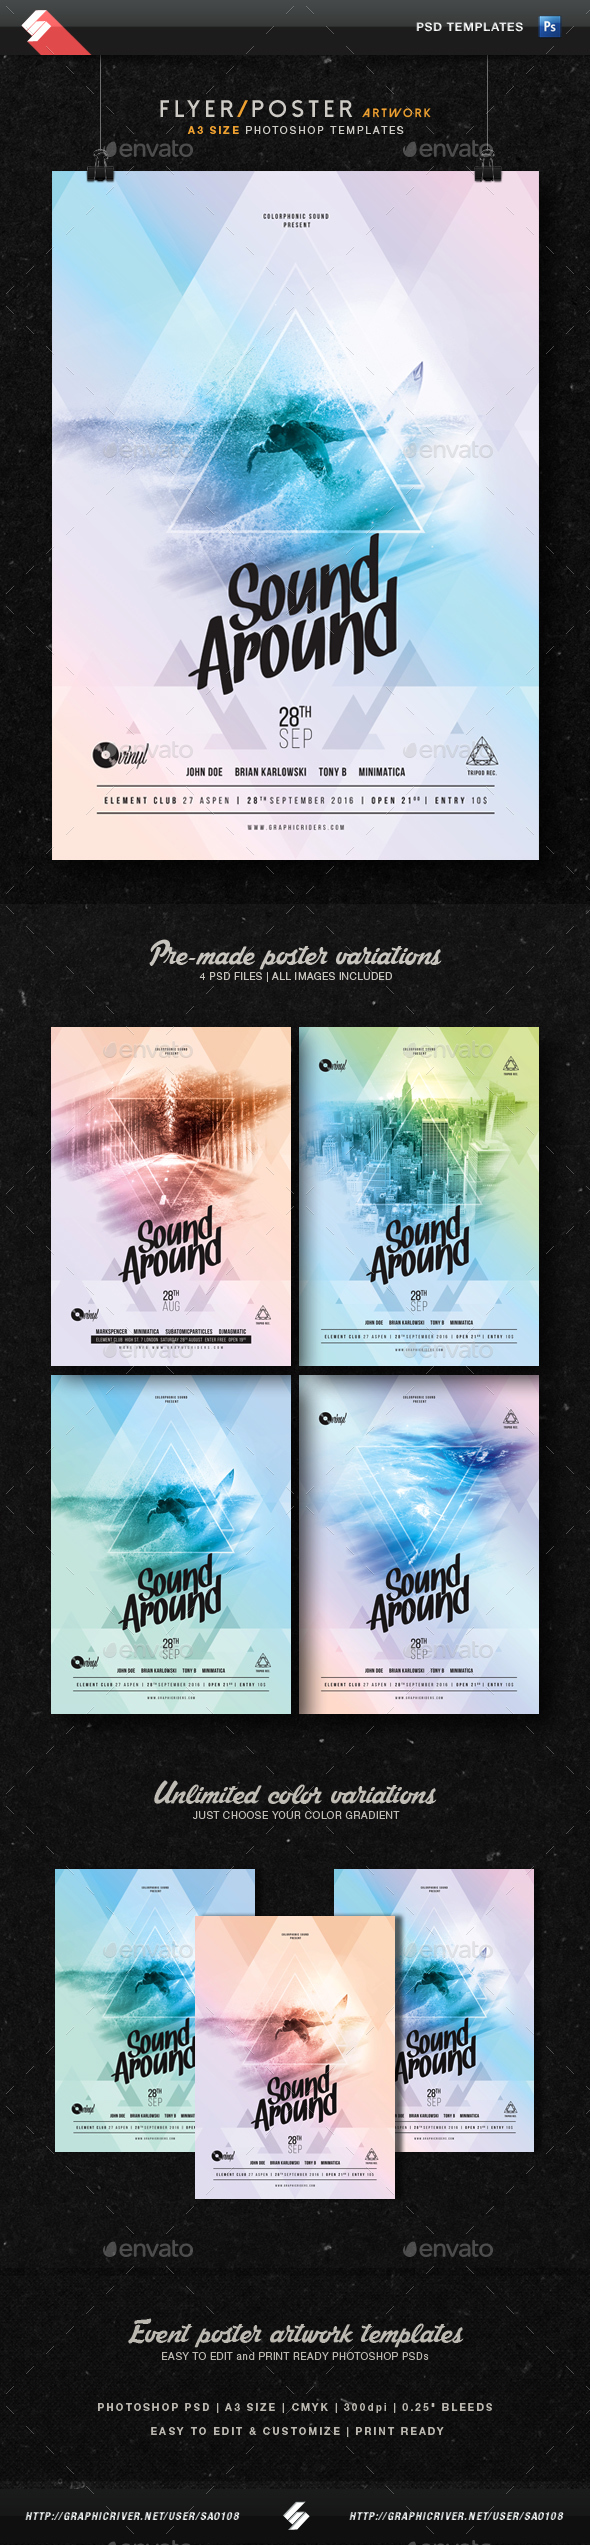 Sound Around - Party Flyer Artwork Template A3 - Clubs & Parties Events